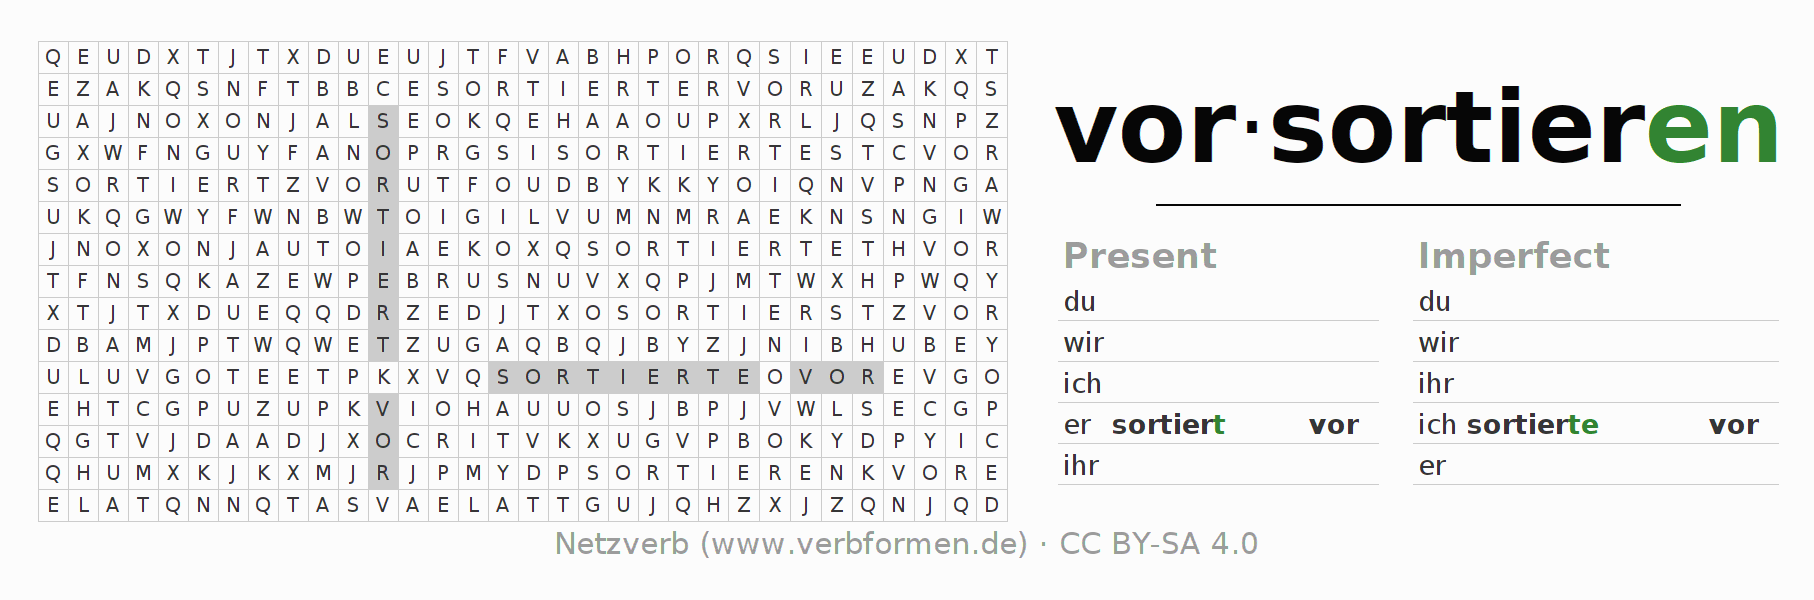 Word search puzzle for the conjugation of the verb vorsortieren